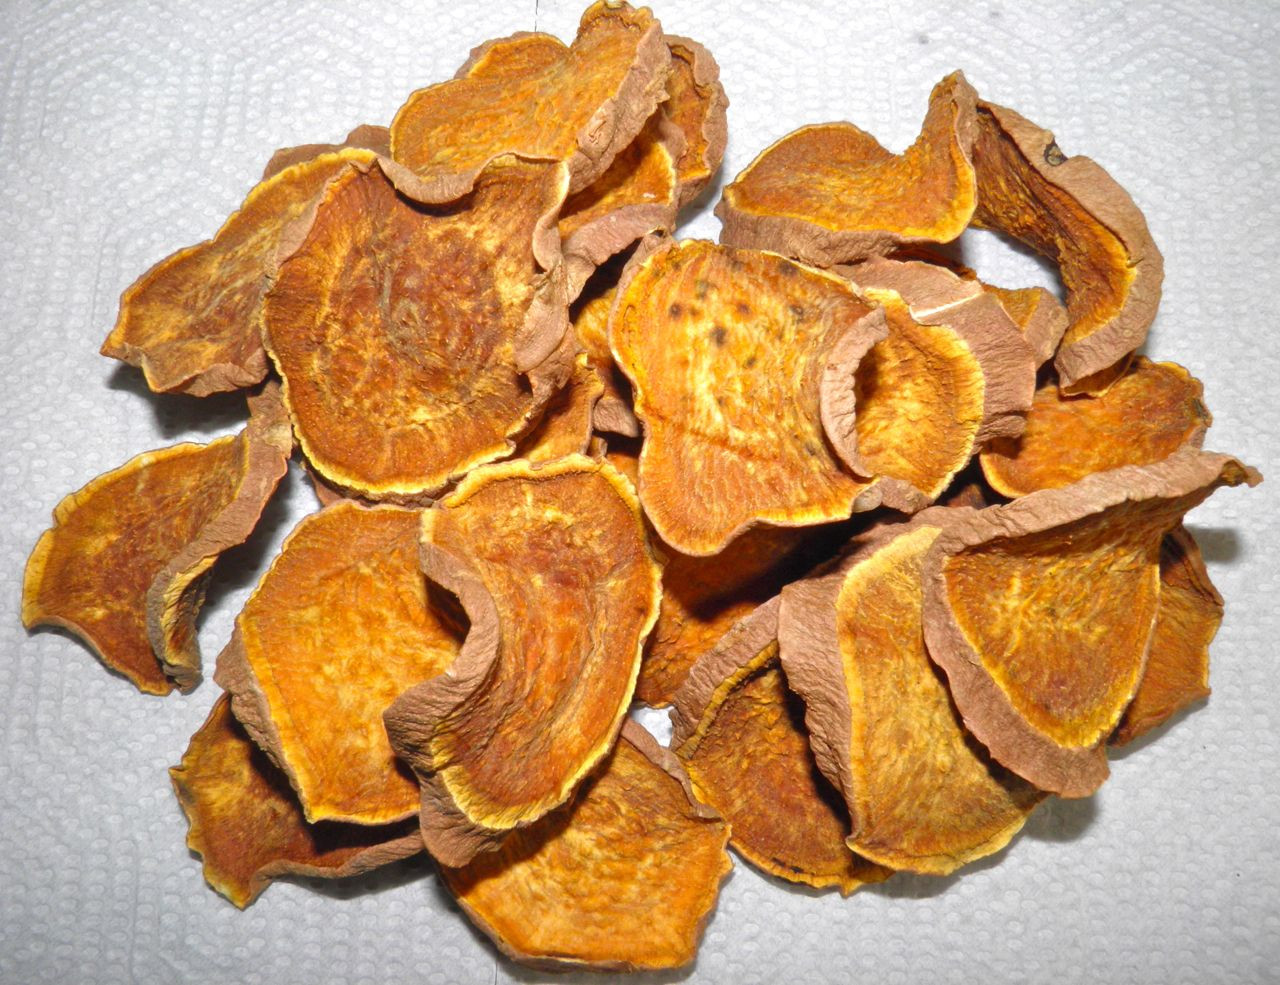 Best ideas about DIY Sweet Potato Dog Treats . Save or Pin Devoid Culture And Indifferent To The Arts Dog Treats Now.